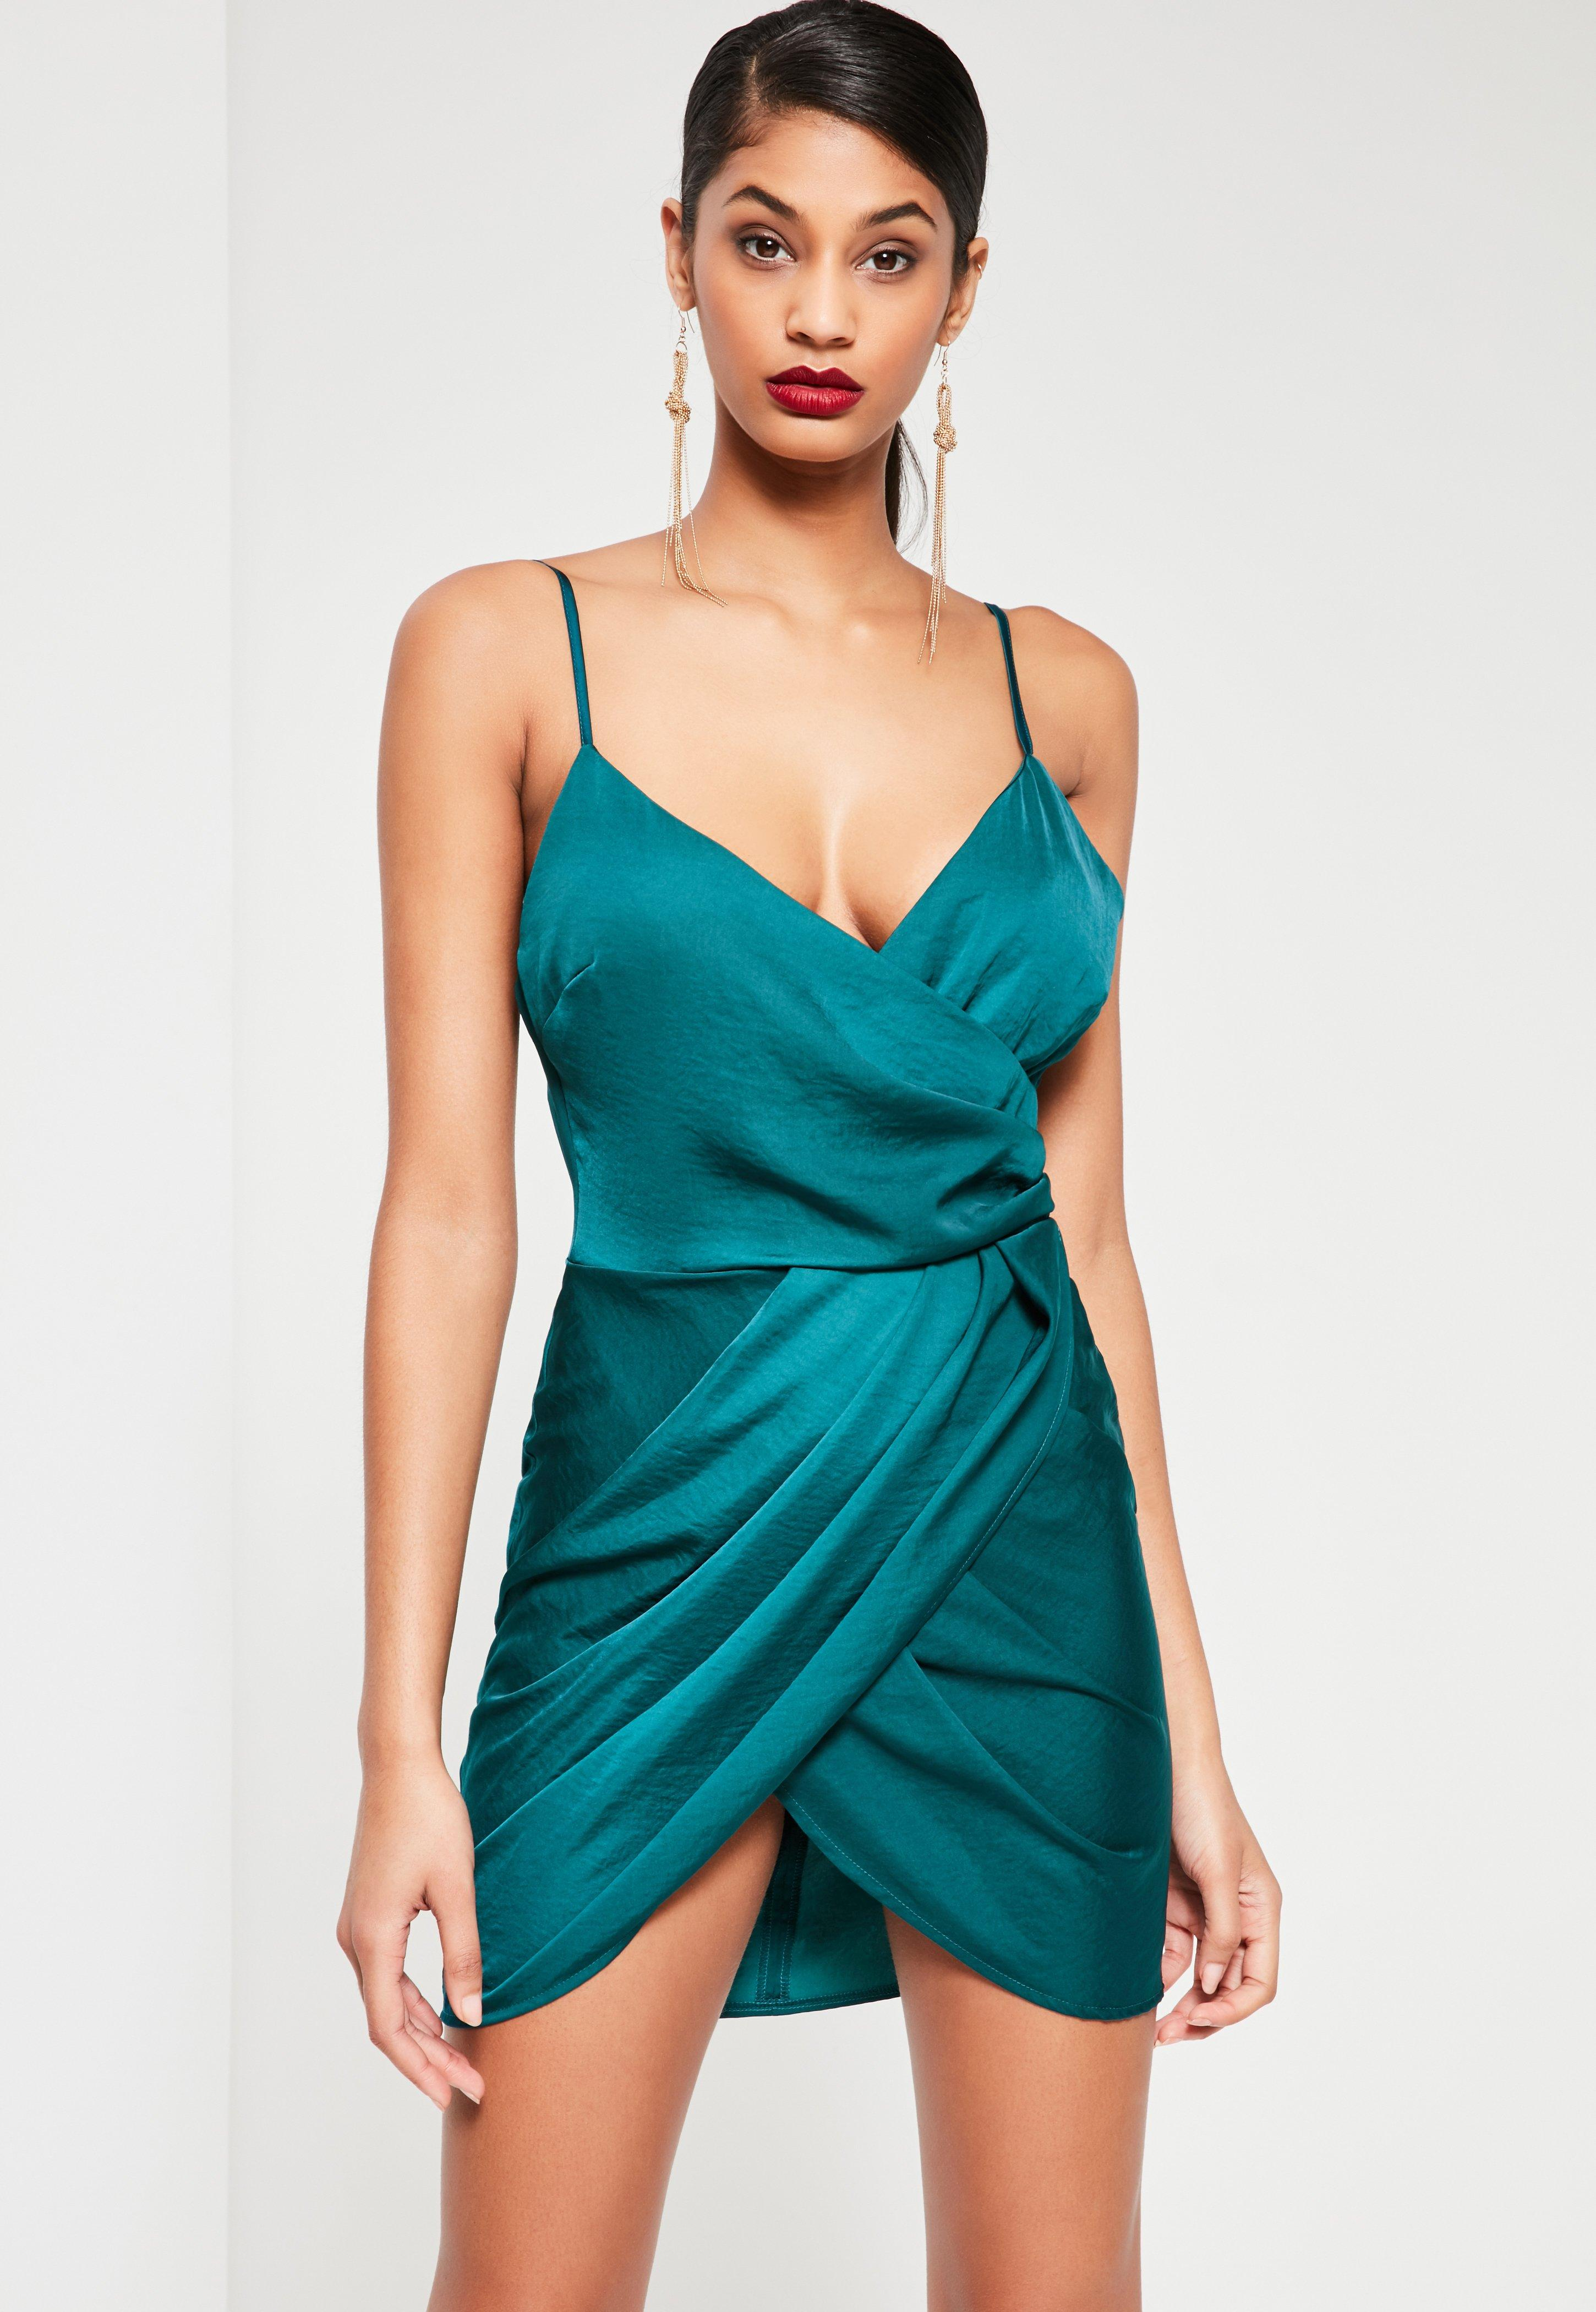 Teal Silky Wrap Dress | Missguided